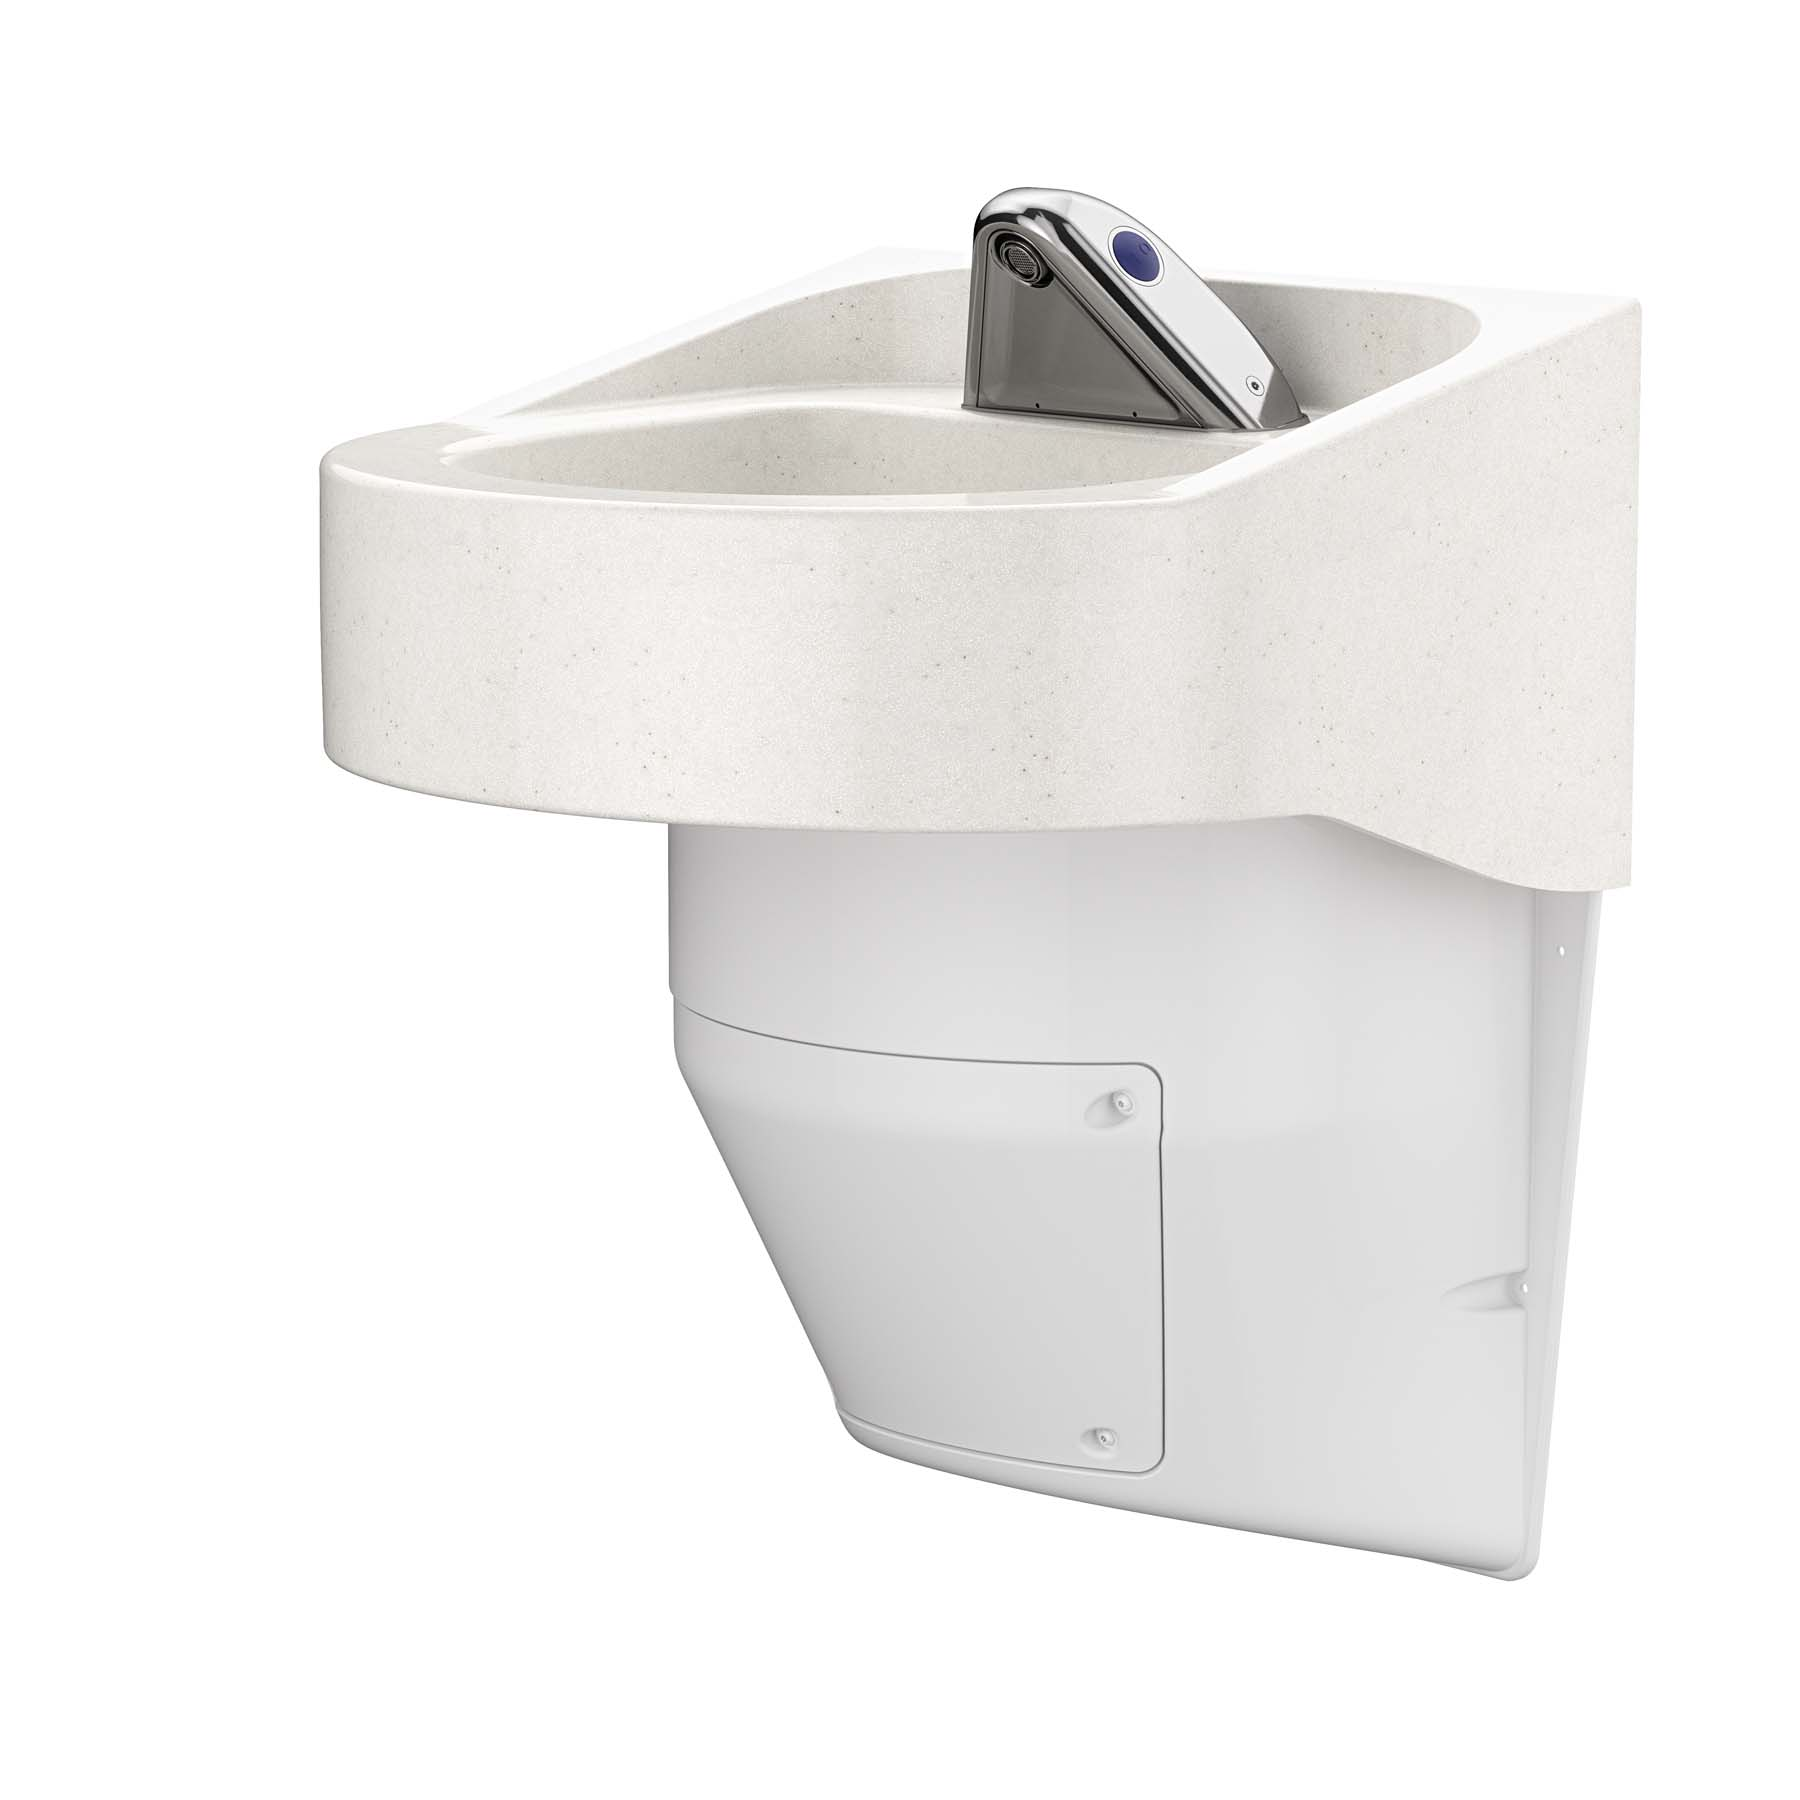 Ligature Resistant Sink and Trap Cover - Side Angle View